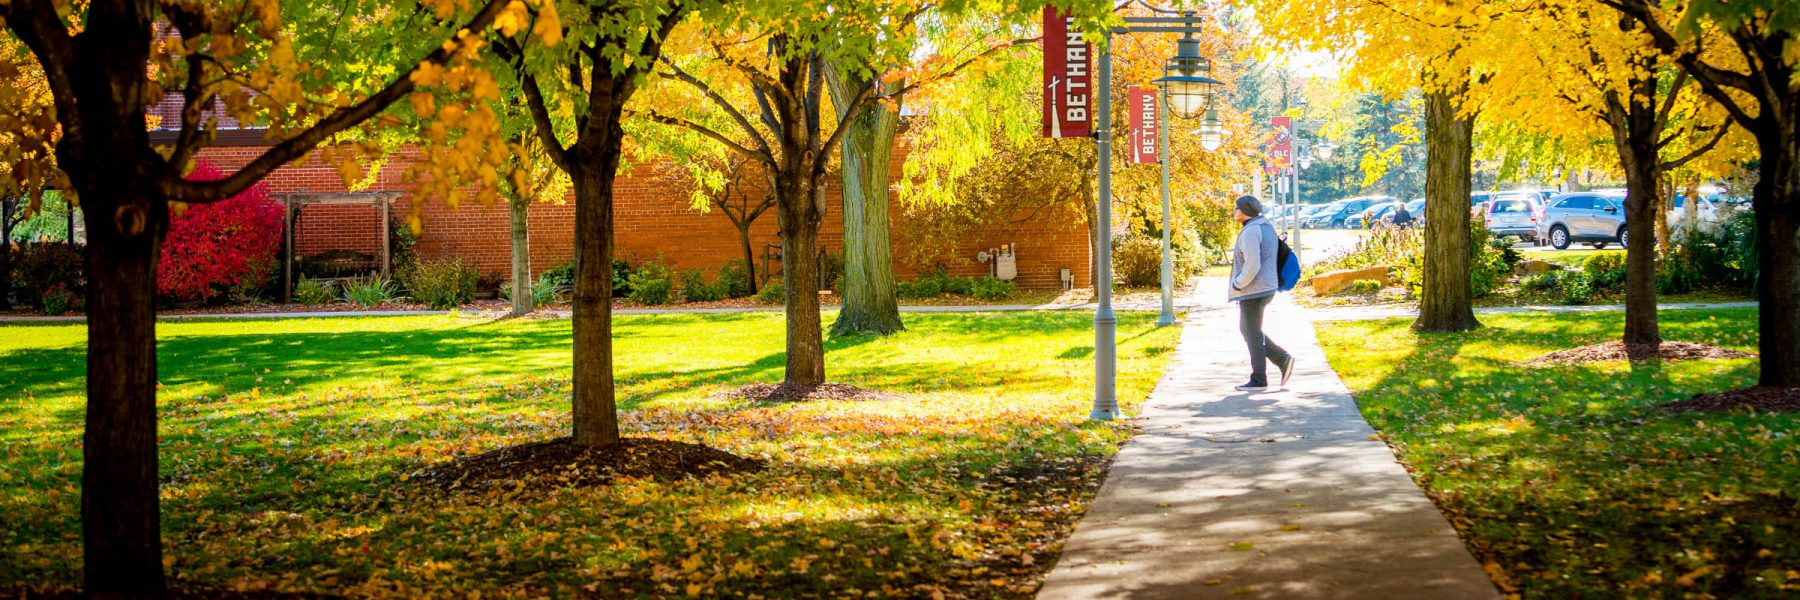 Student walking on sidewalk among trees in fall